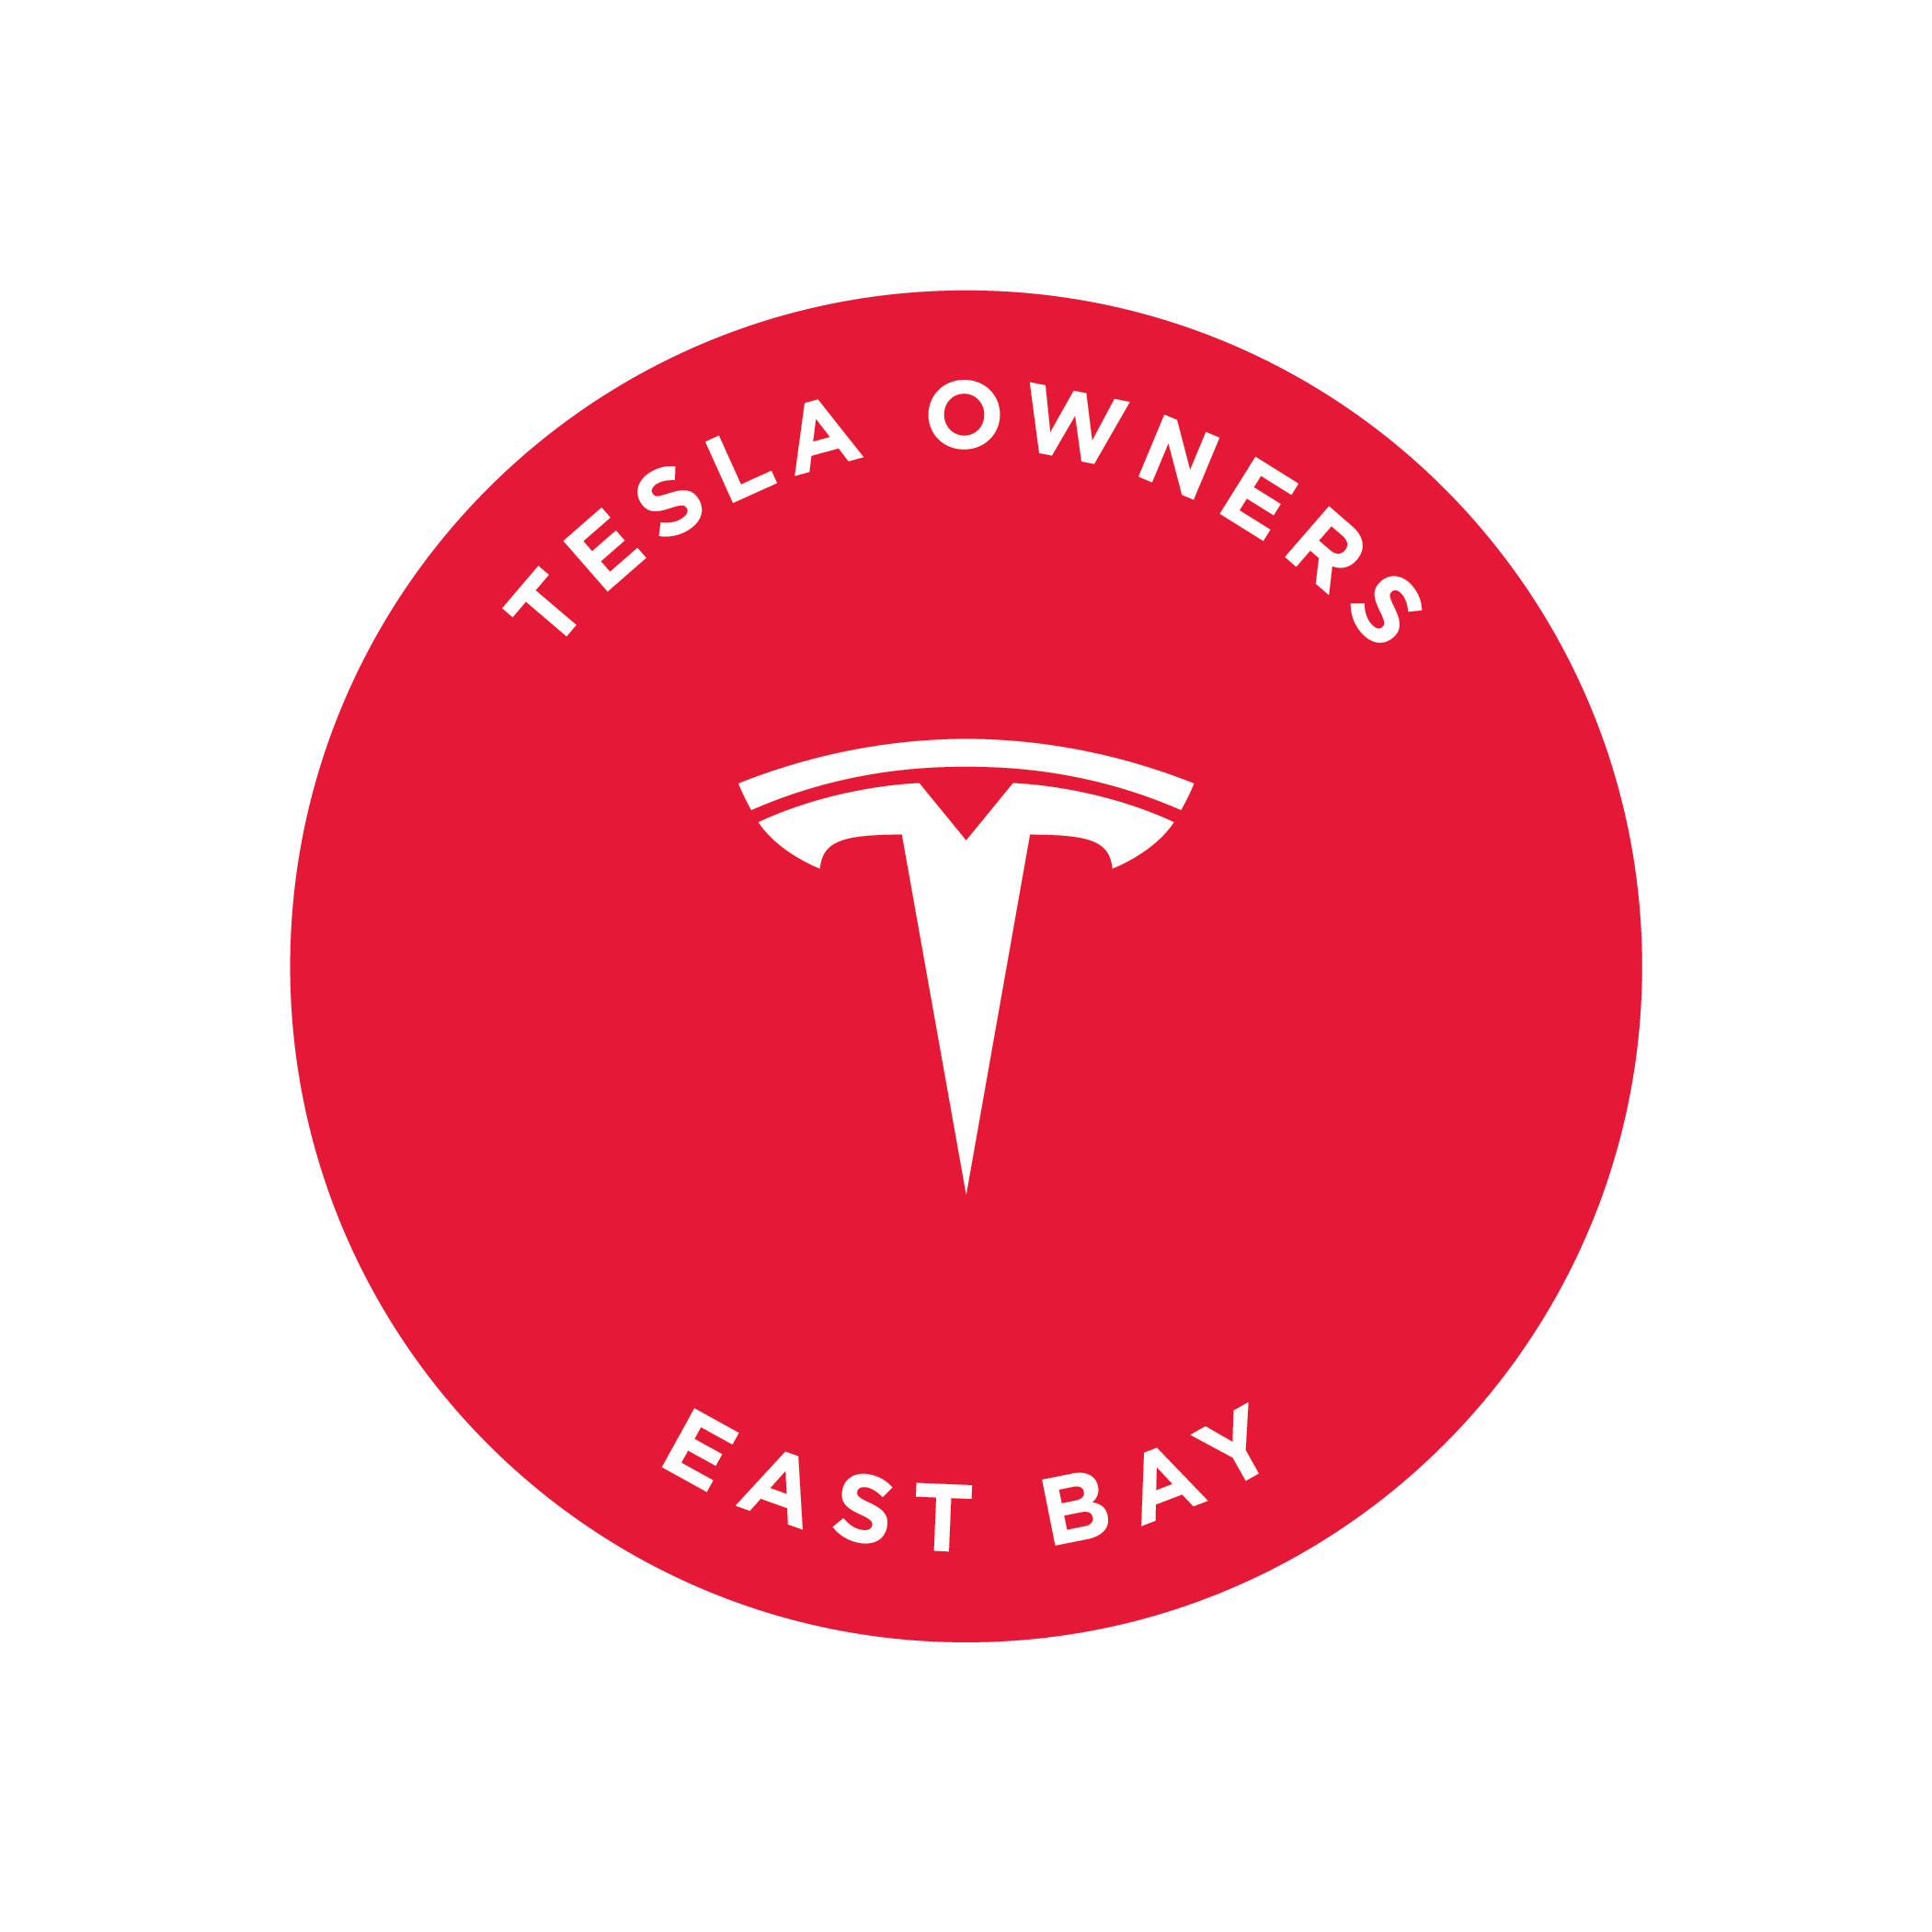 Tesla Owners East Bay Logo